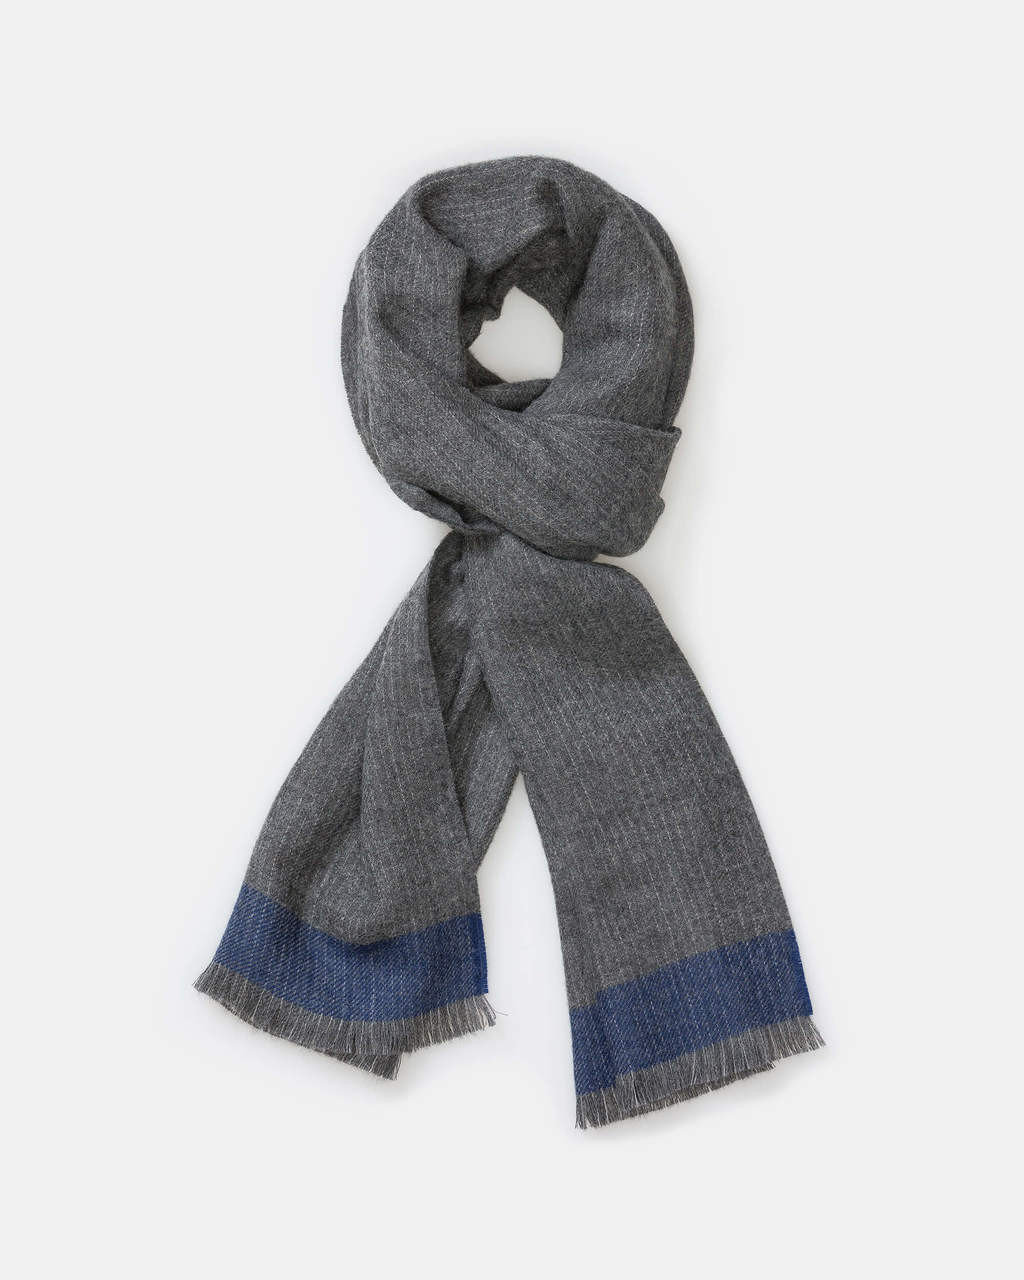 alicia adams alpaca empire scarf for him, mens alpaca scarf, alpaca scarf, fair trade made scarf, alpaca vs cashmere, grey and indigo blue alpaca scarf